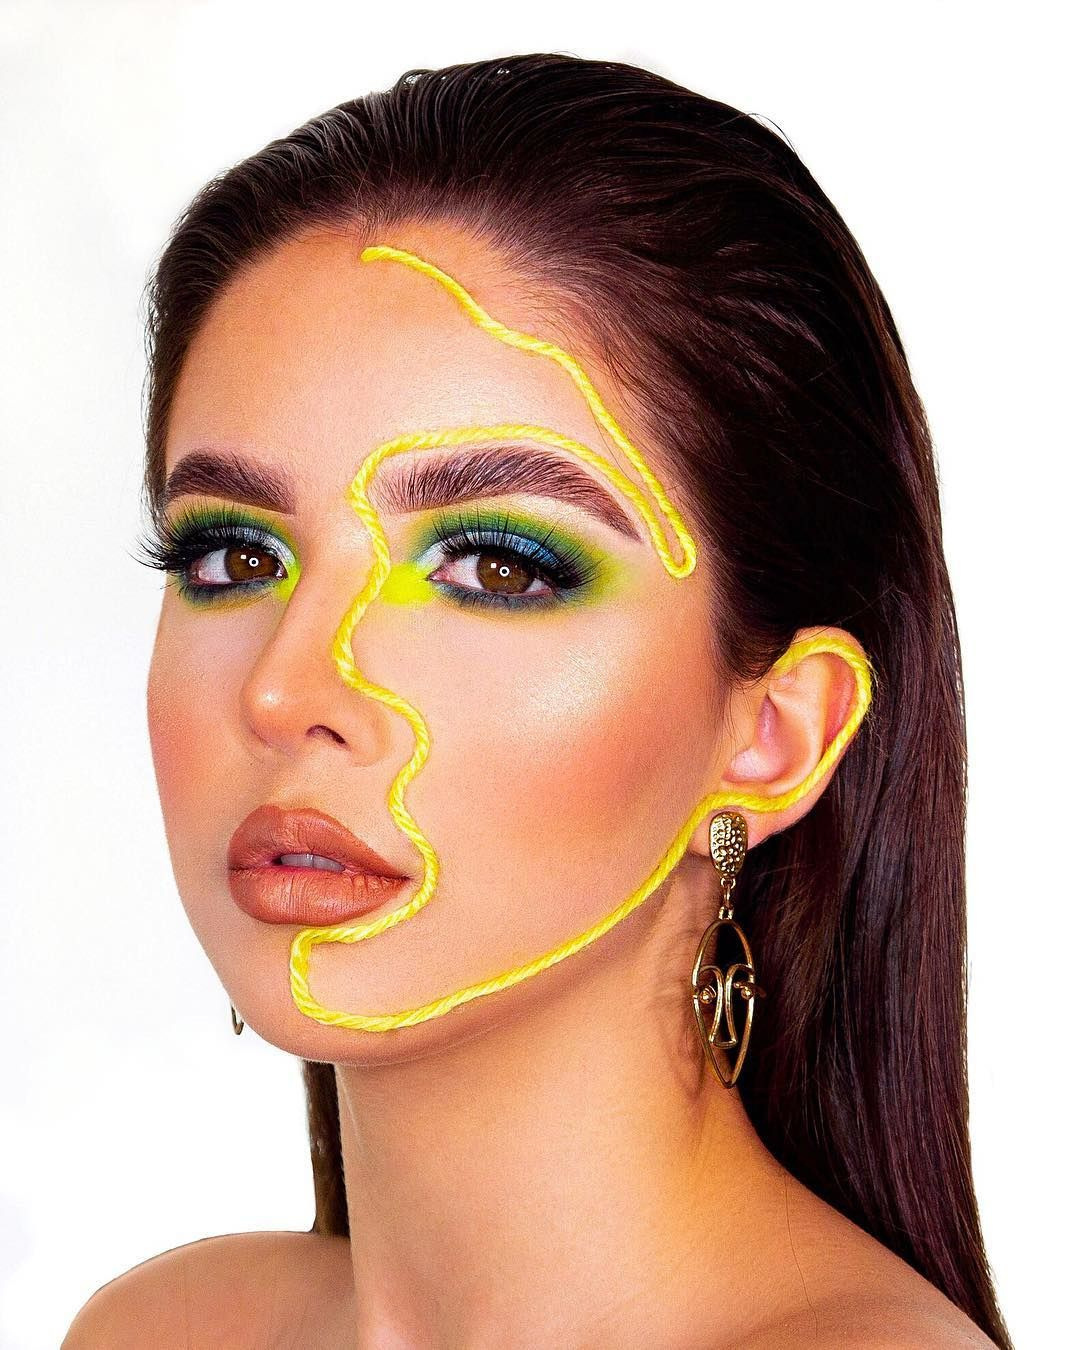 Pin by 𝓀𝒶𝓇𝒾𝓃𝒶 𝓈𝒽𝒶𝒽 on makeup in 2020 Artistry makeup